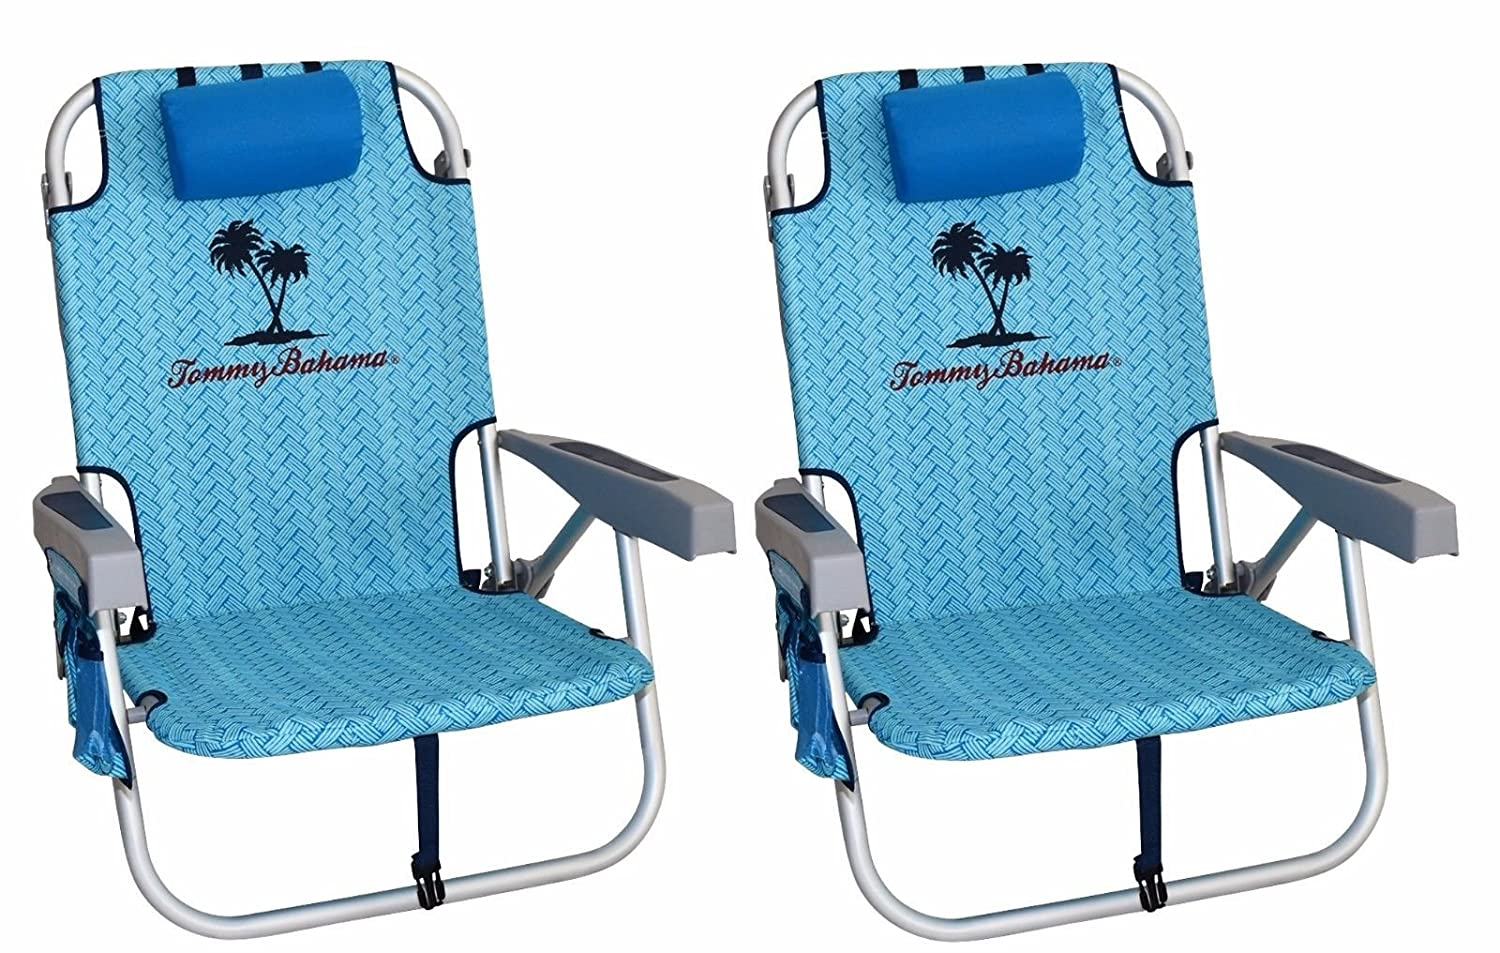 Backpack cooler chair - Amazon Com 2 Tommy Bahama 2016 Backpack Cooler Chair With Storage Pouch And Towel Bar Blue Weave Blue Weave Sports Outdoors